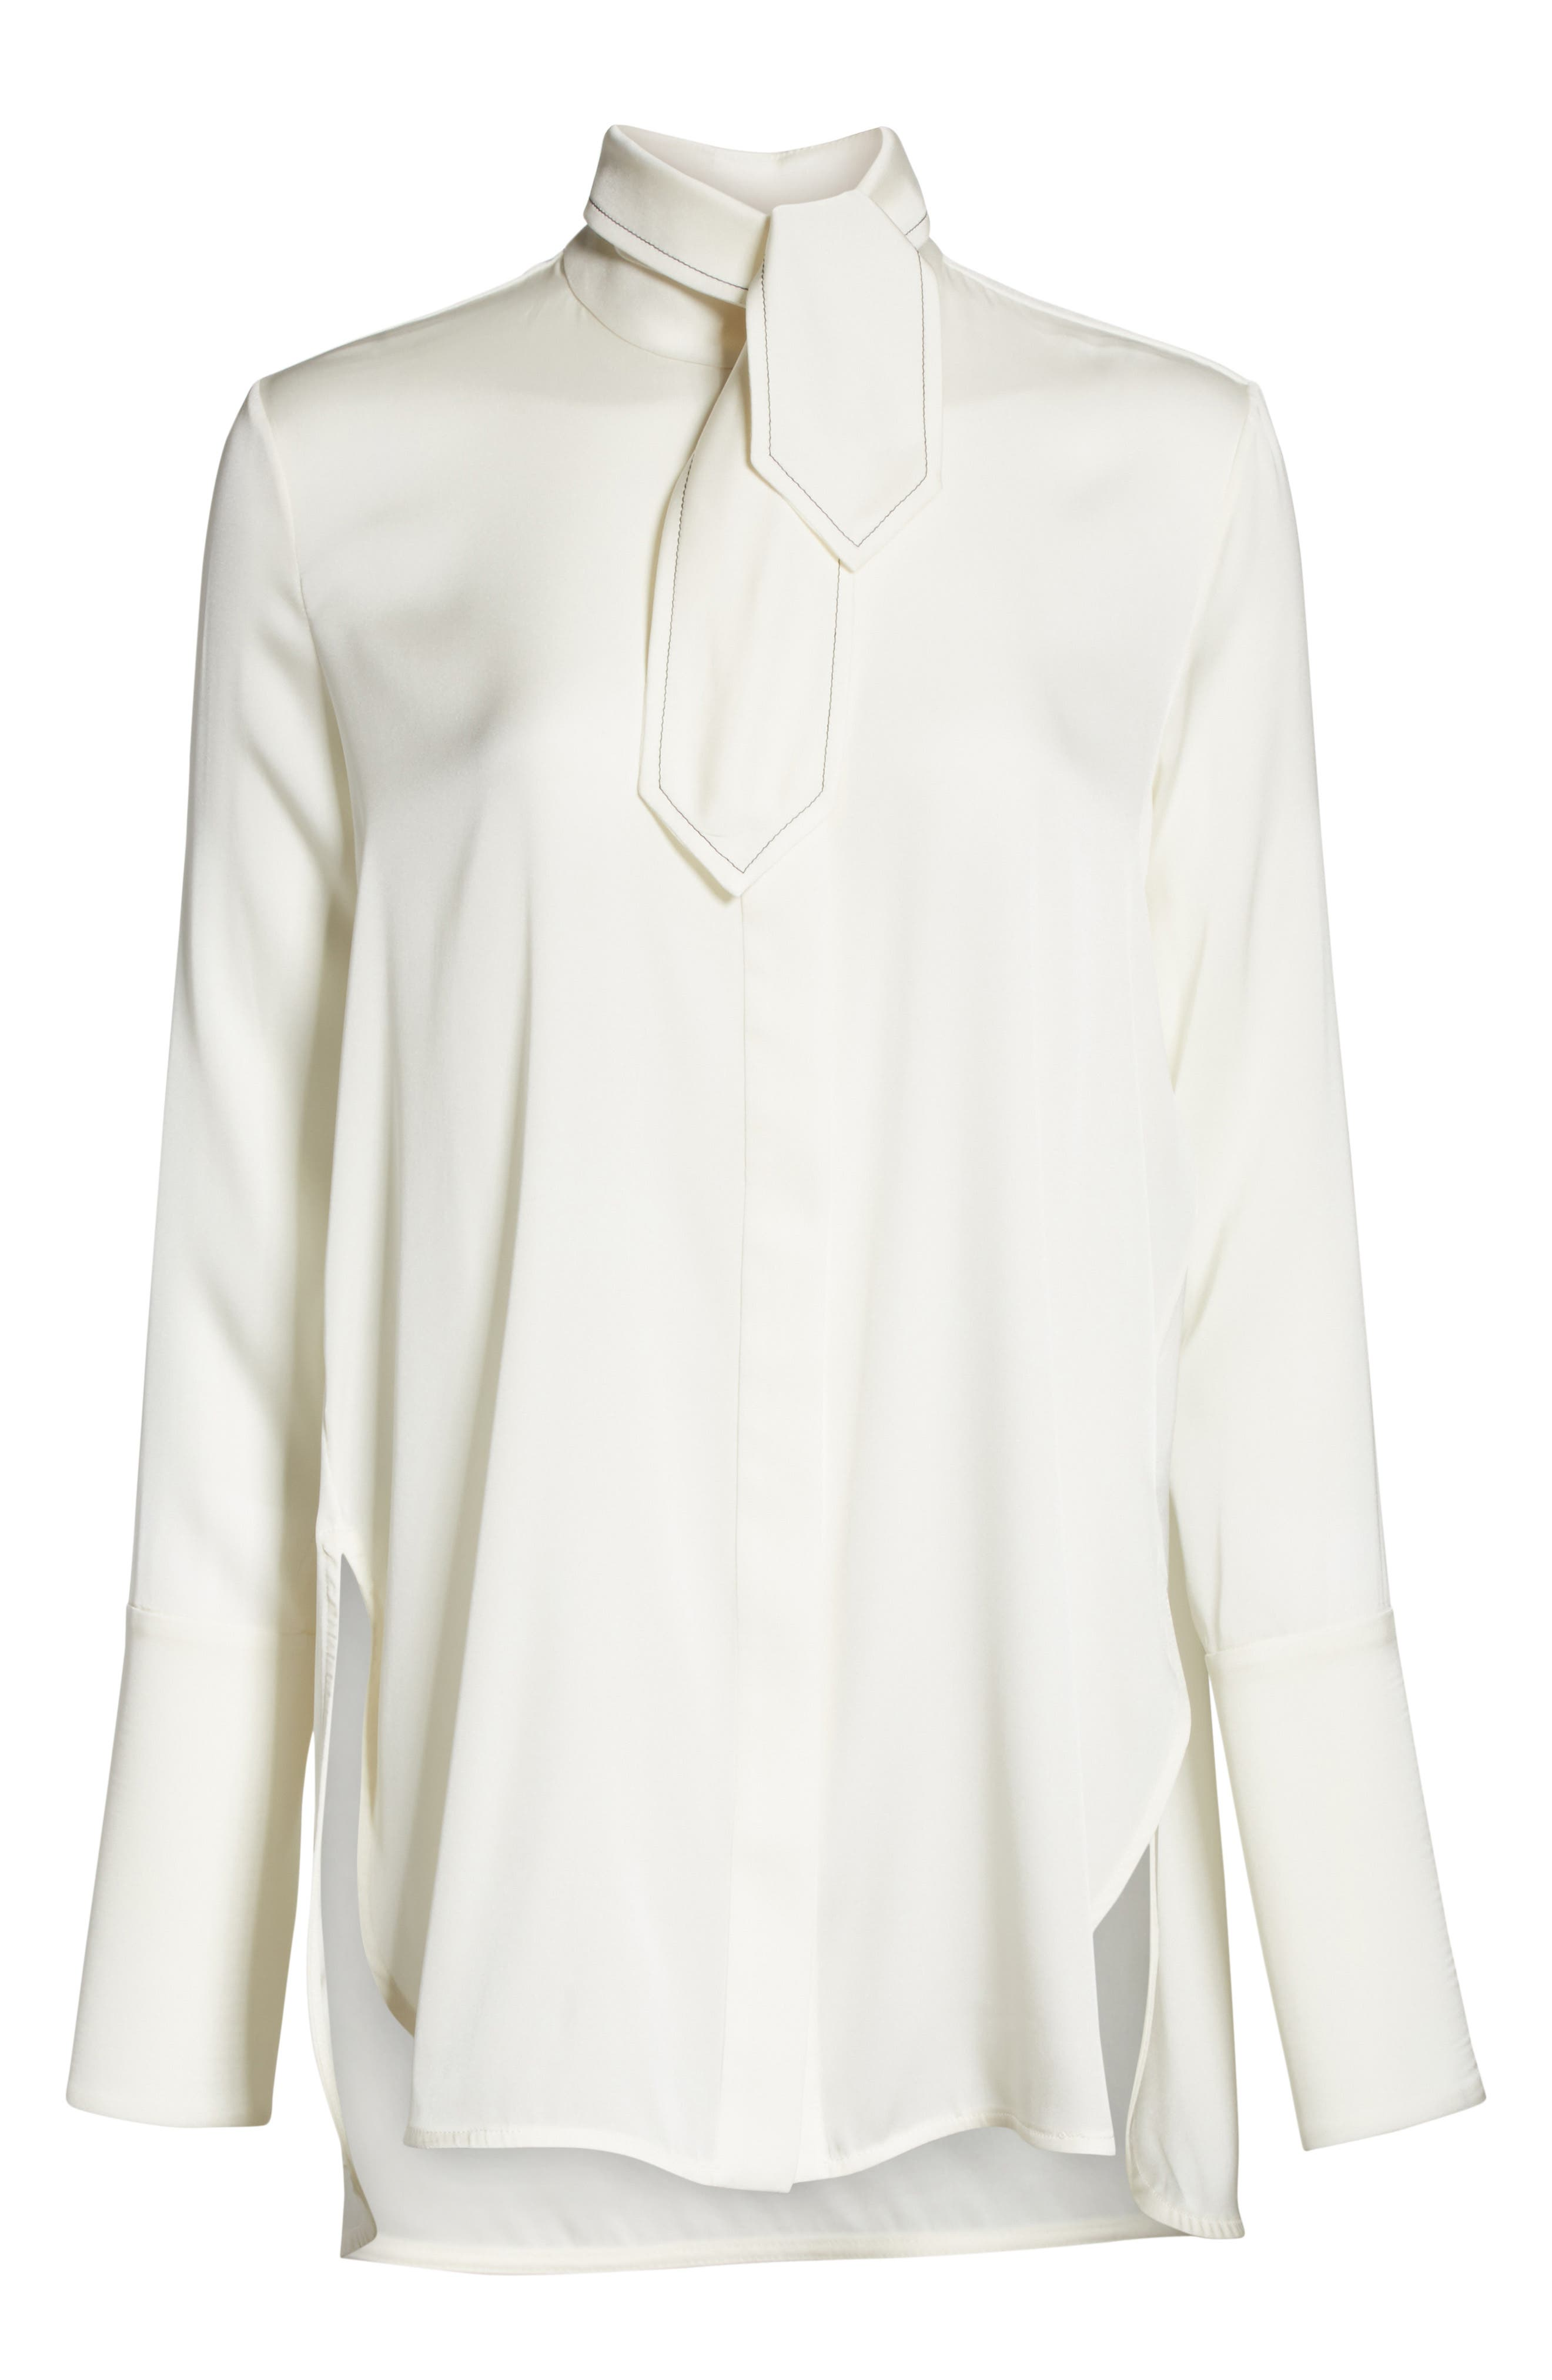 Ride Lonesome Tie Neck Blouse,                             Alternate thumbnail 6, color,                             Ivory